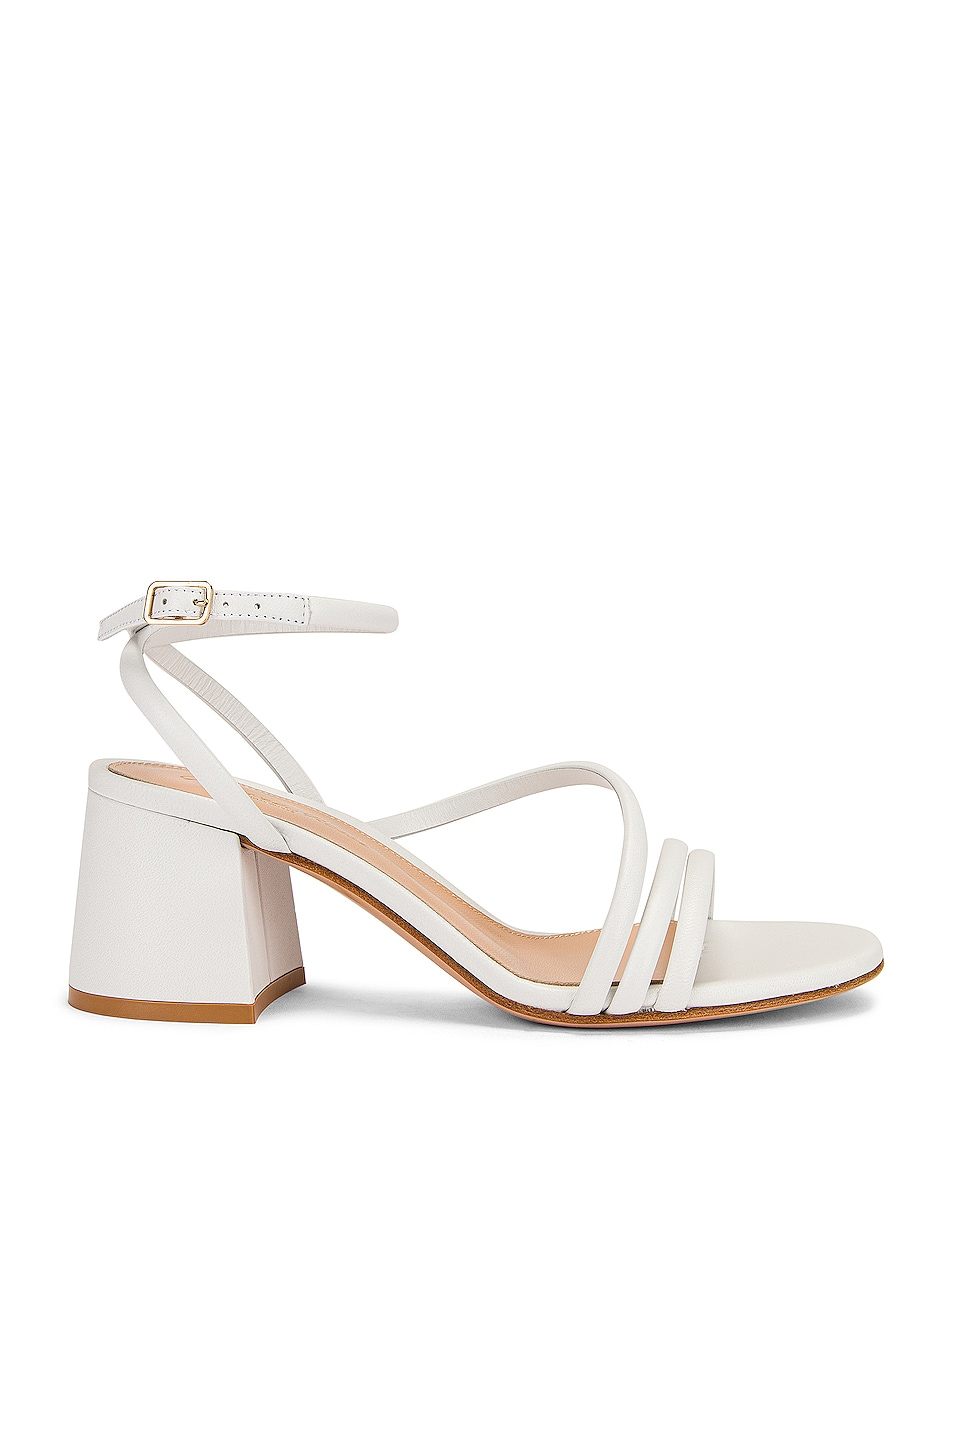 Image 1 of Gianvito Rossi Ankle Strap Sandals in White